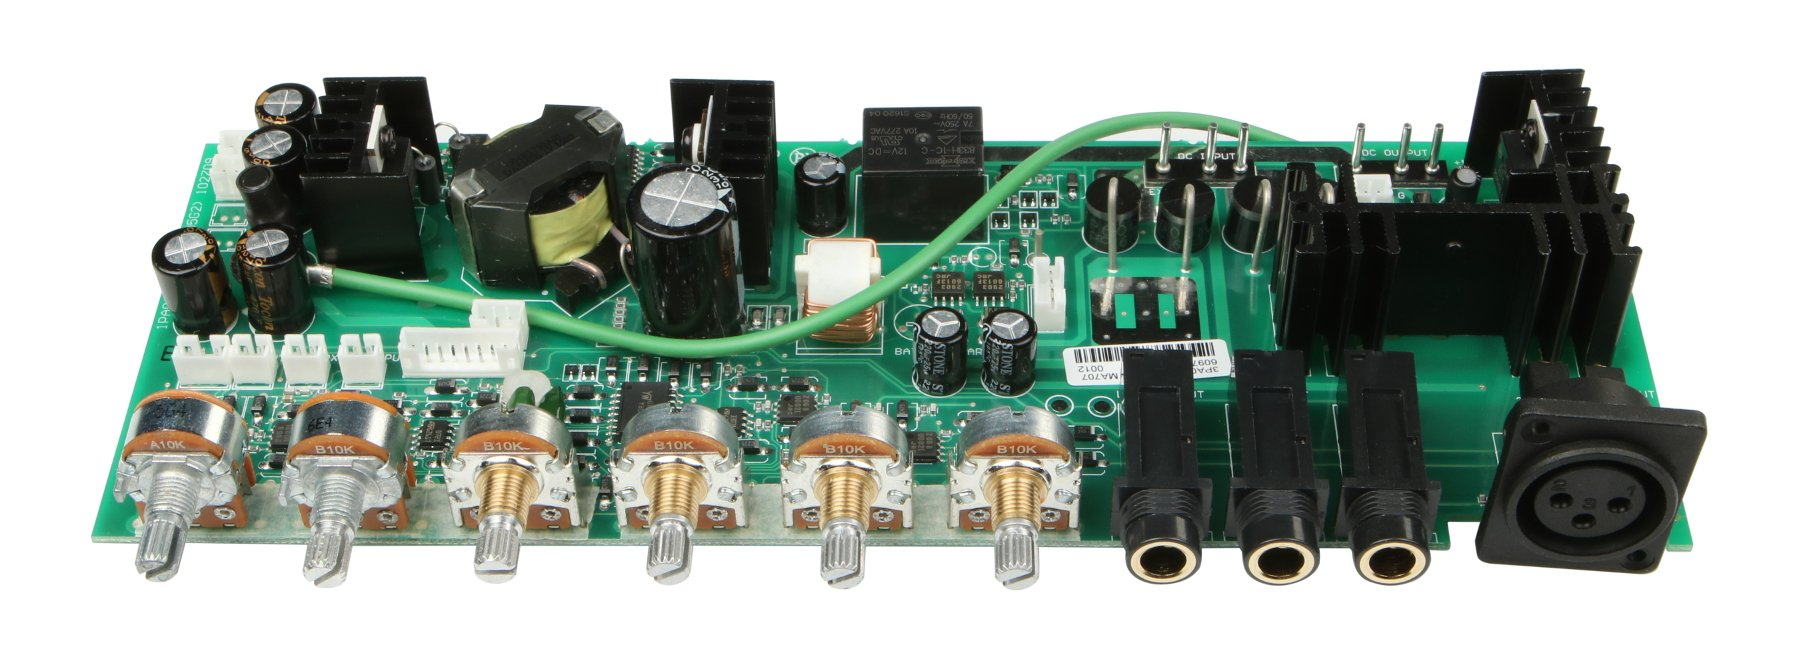 Control Panel PCB for MA707